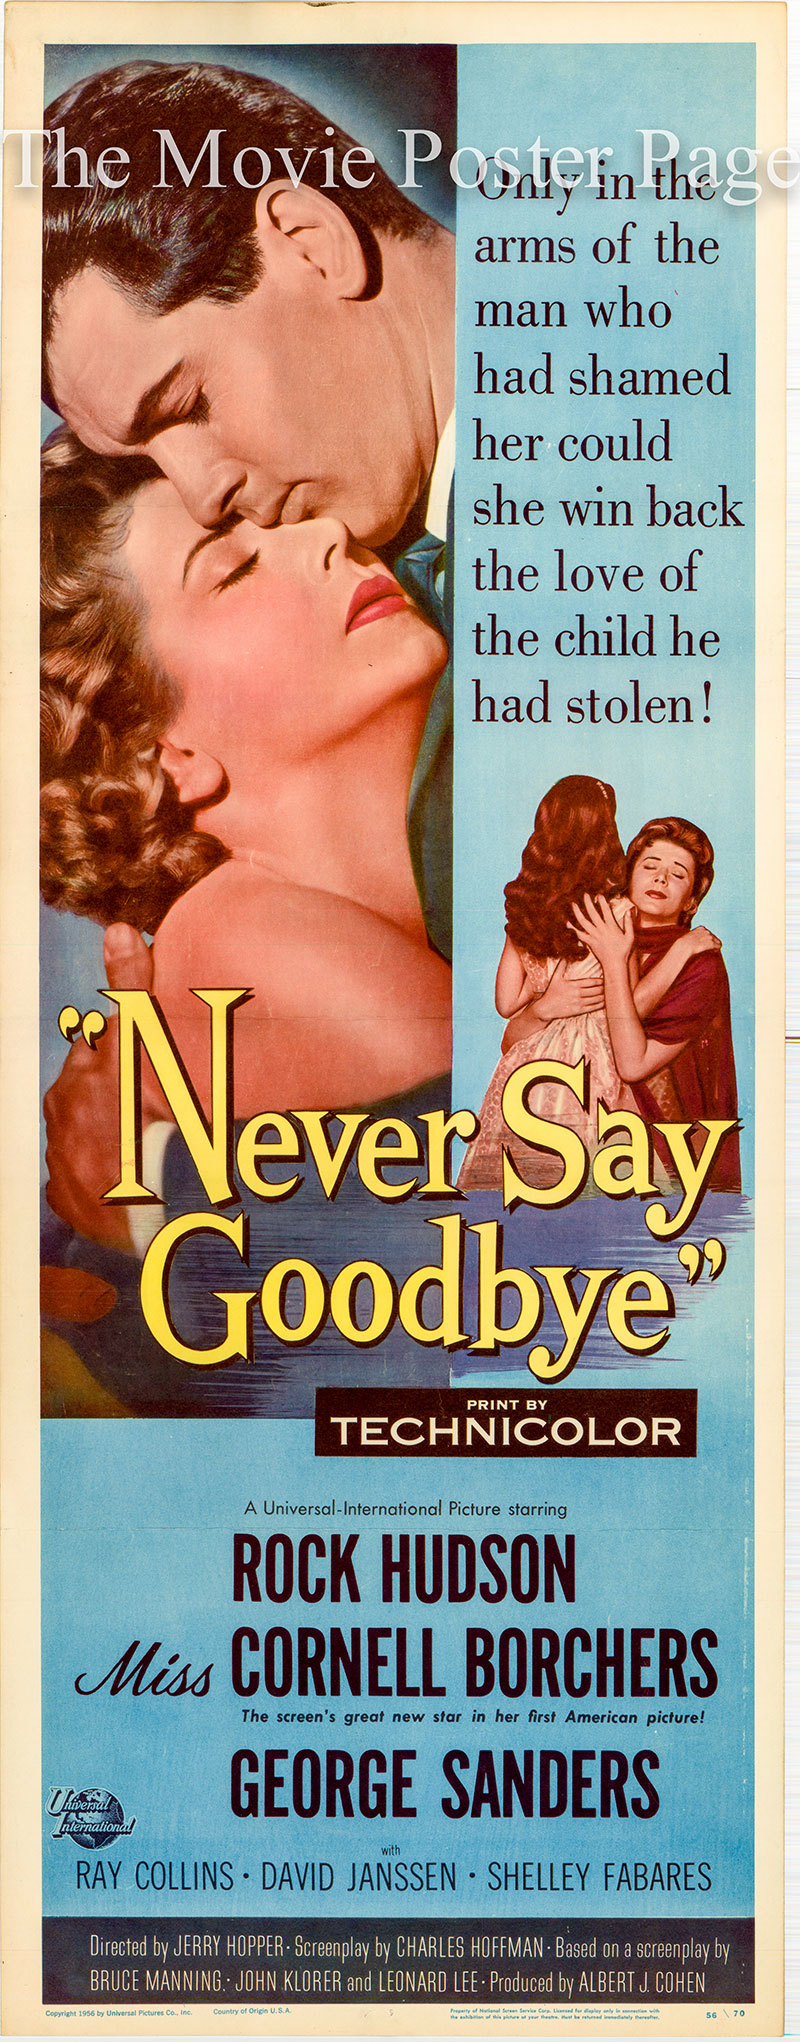 Pictured is the US insert promotional poster for the 1955 Jerry Hopper film Never Say Goodbye, starring Rock Hudson.